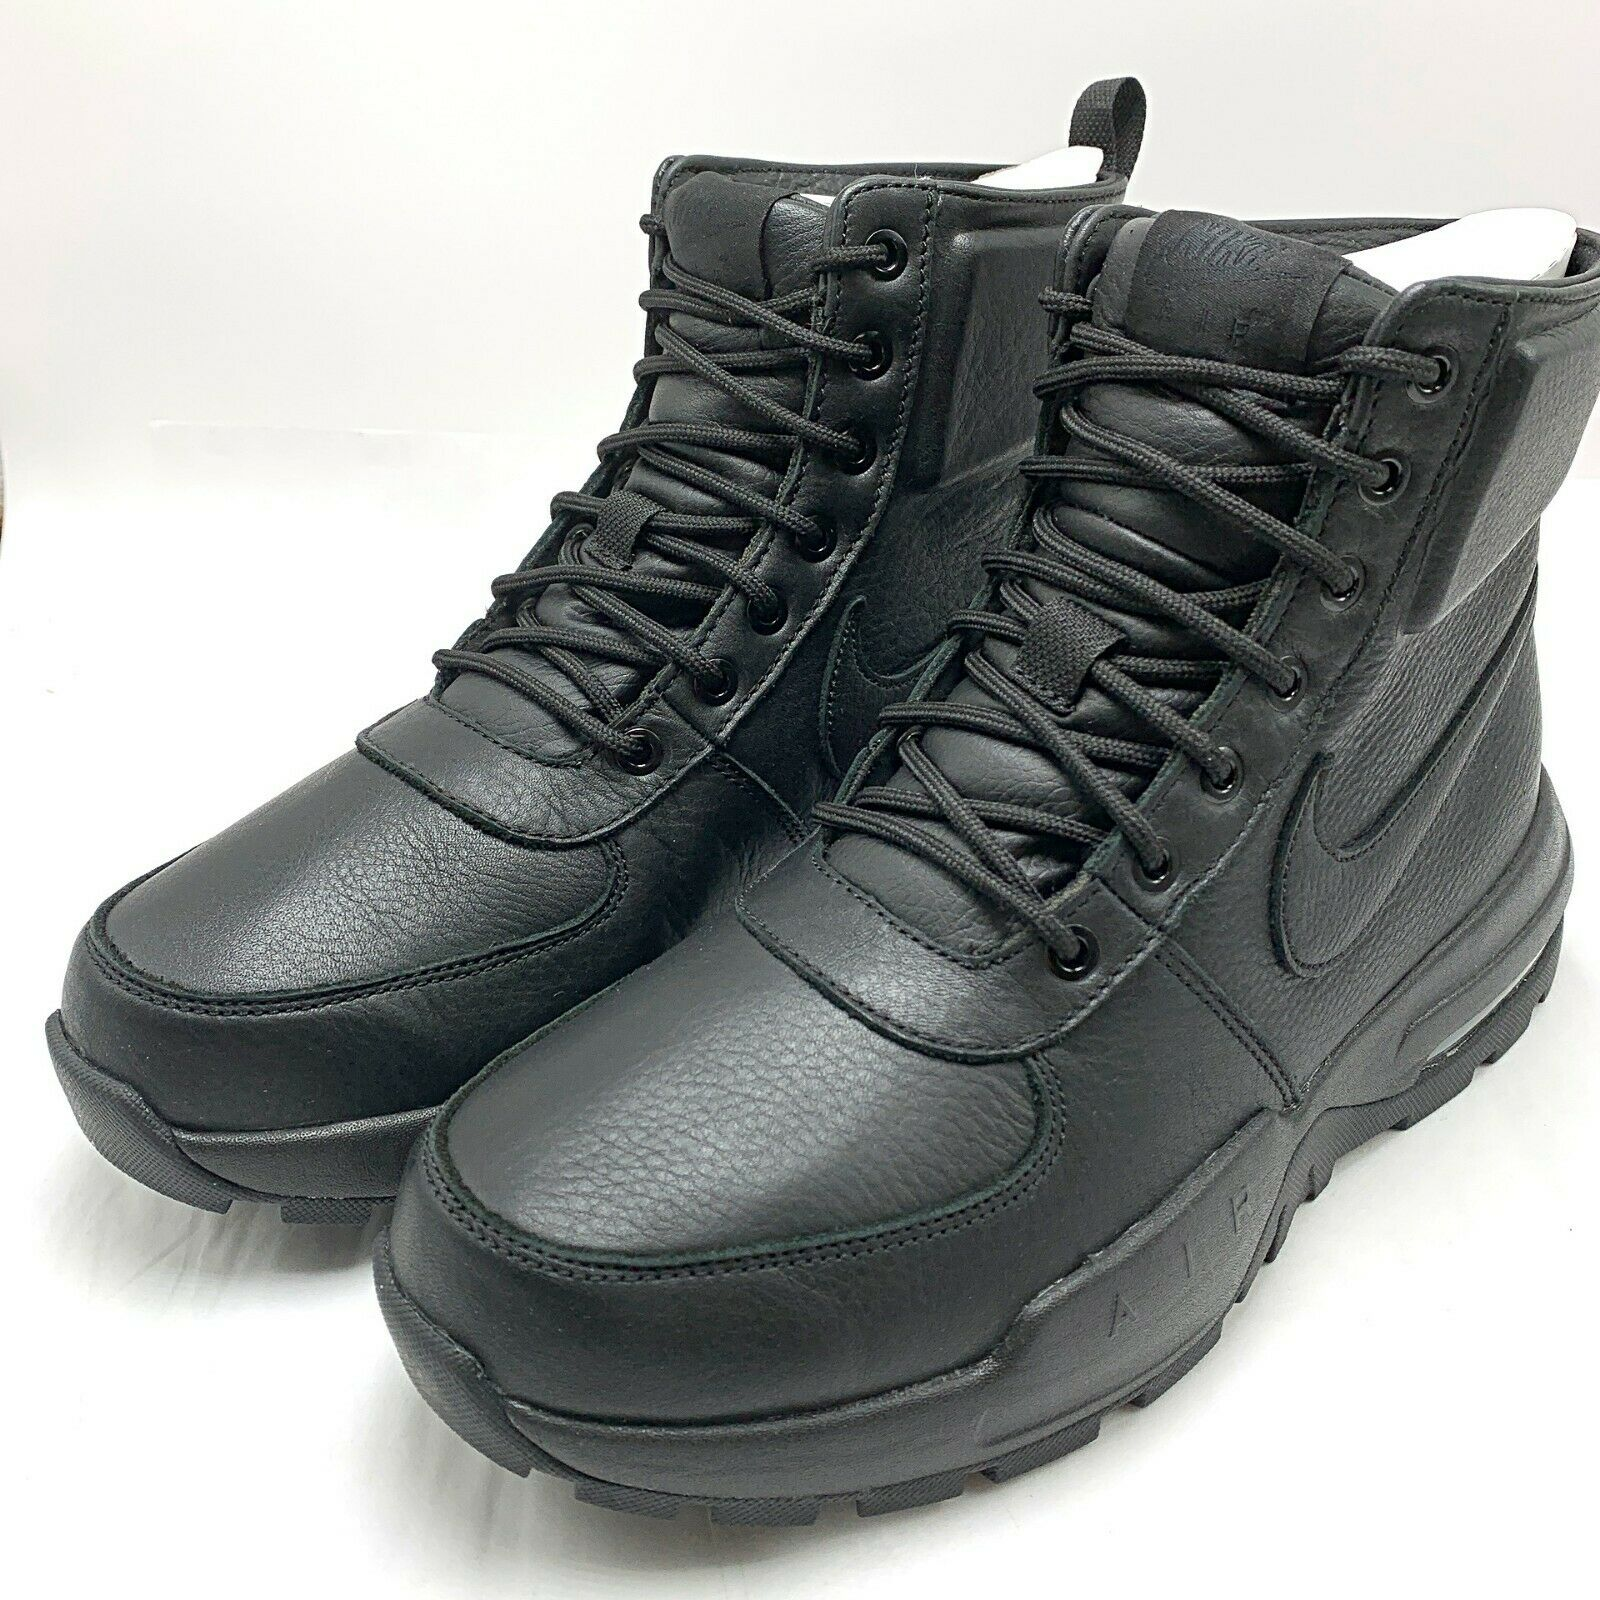 Nike Air Max Goaterra 2.0 Mens 916816 001 Black Leather Waterproof BOOTS Size 9